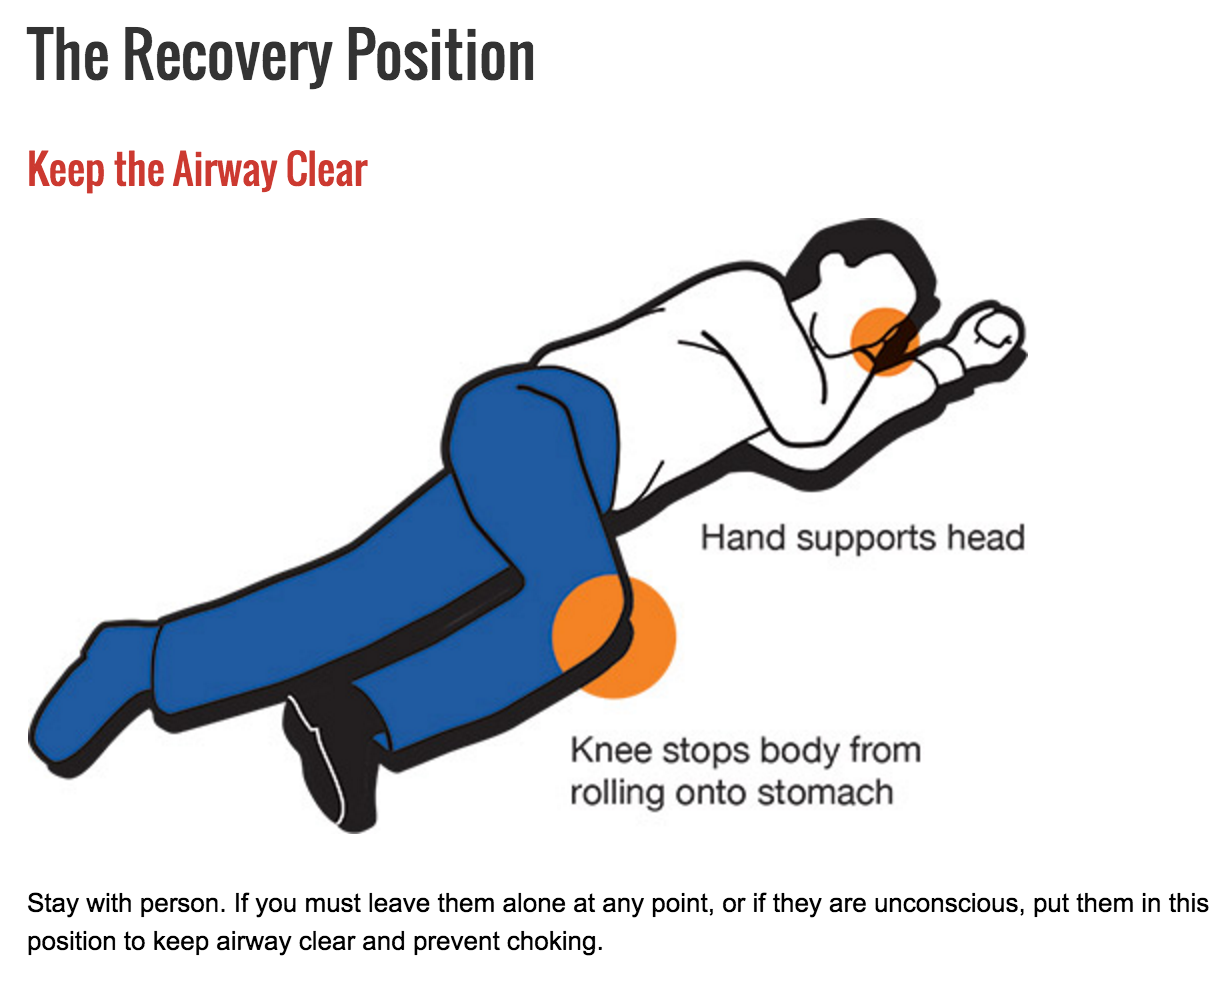 The Recovery Position from the Overdose Survival Guide